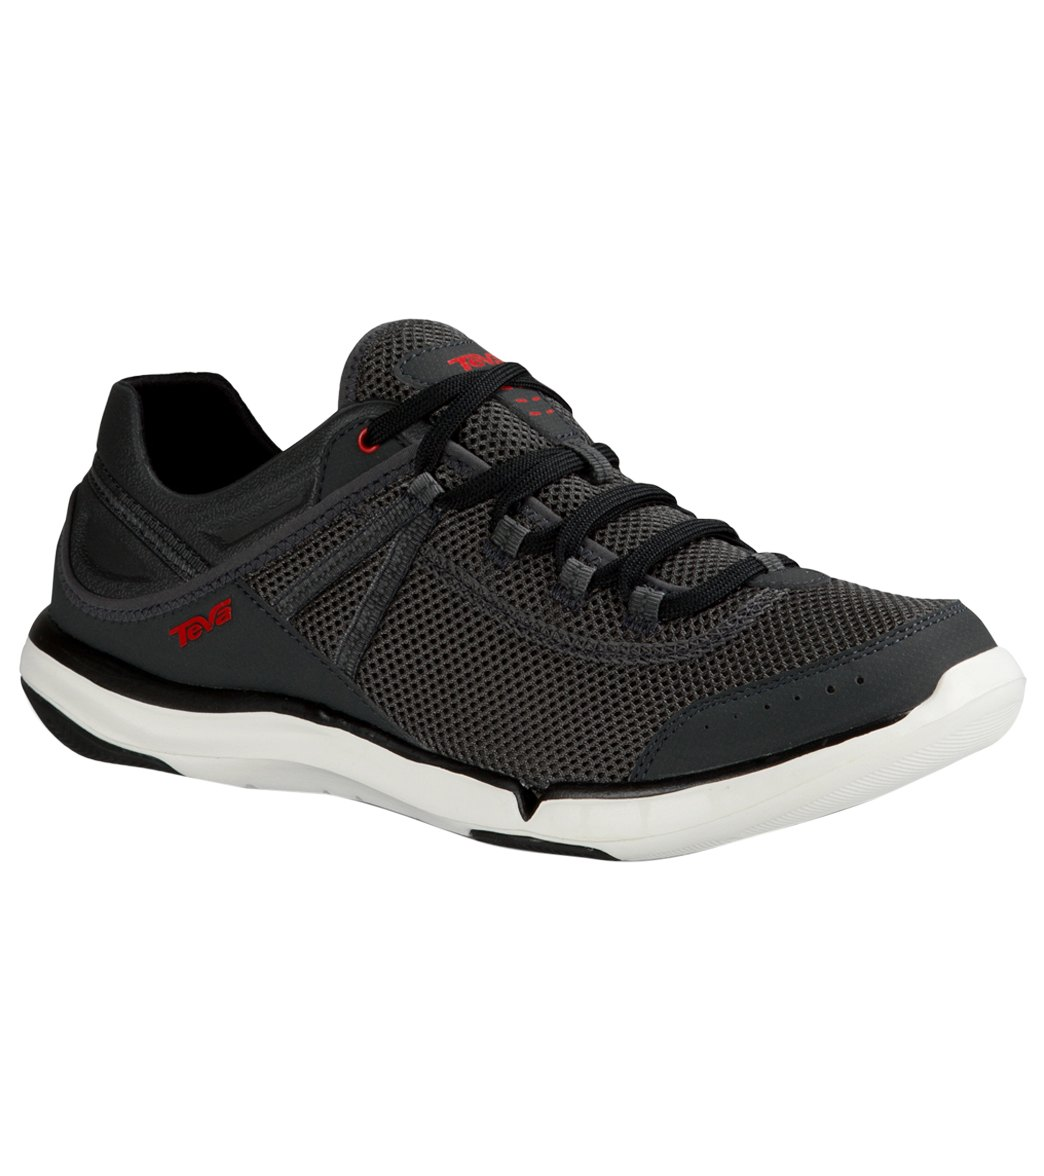 834e14b447b409 Teva Men s Evo Water Shoe at SwimOutlet.com - Free Shipping